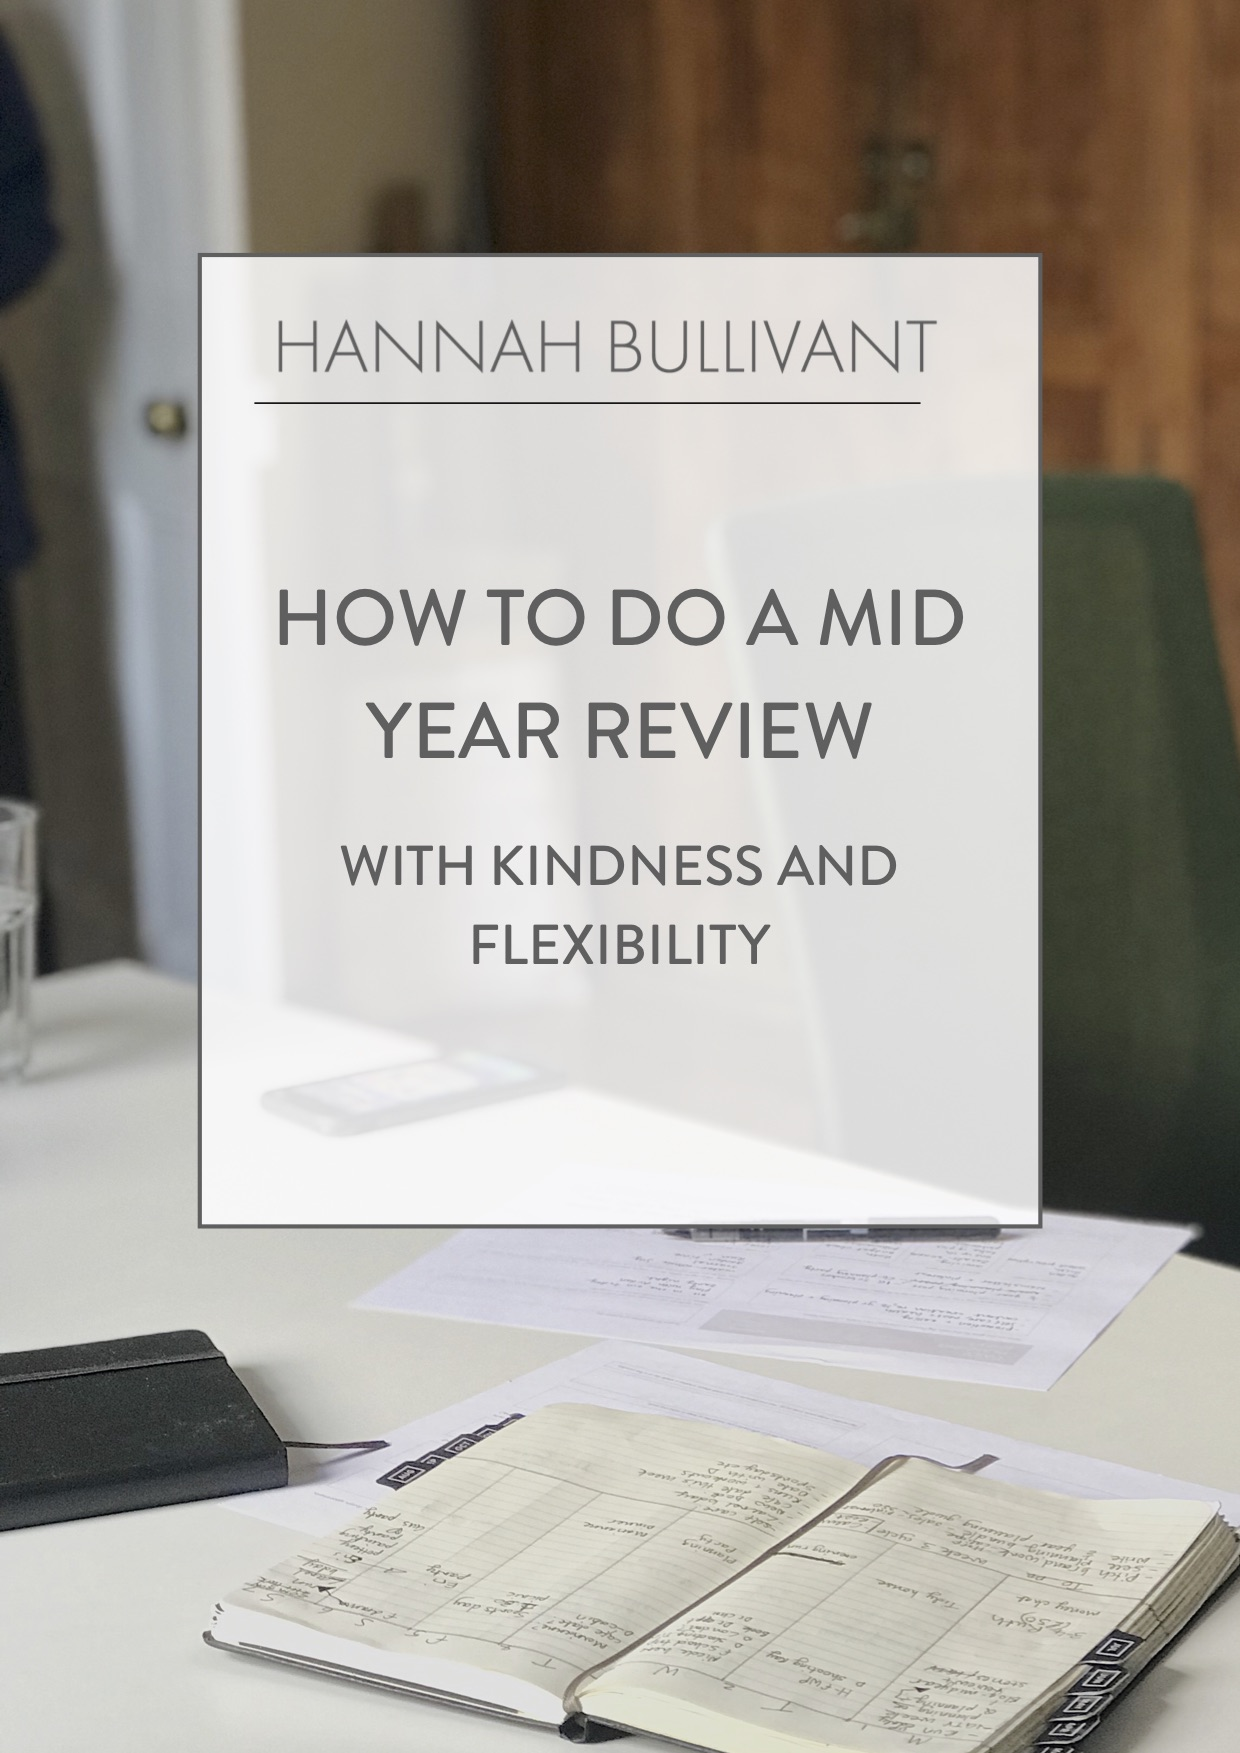 How to do a mid year review, mid year review and plan, mid year goal check in, making good goals, making kind goals, radically kind goals, mid year planning questions.